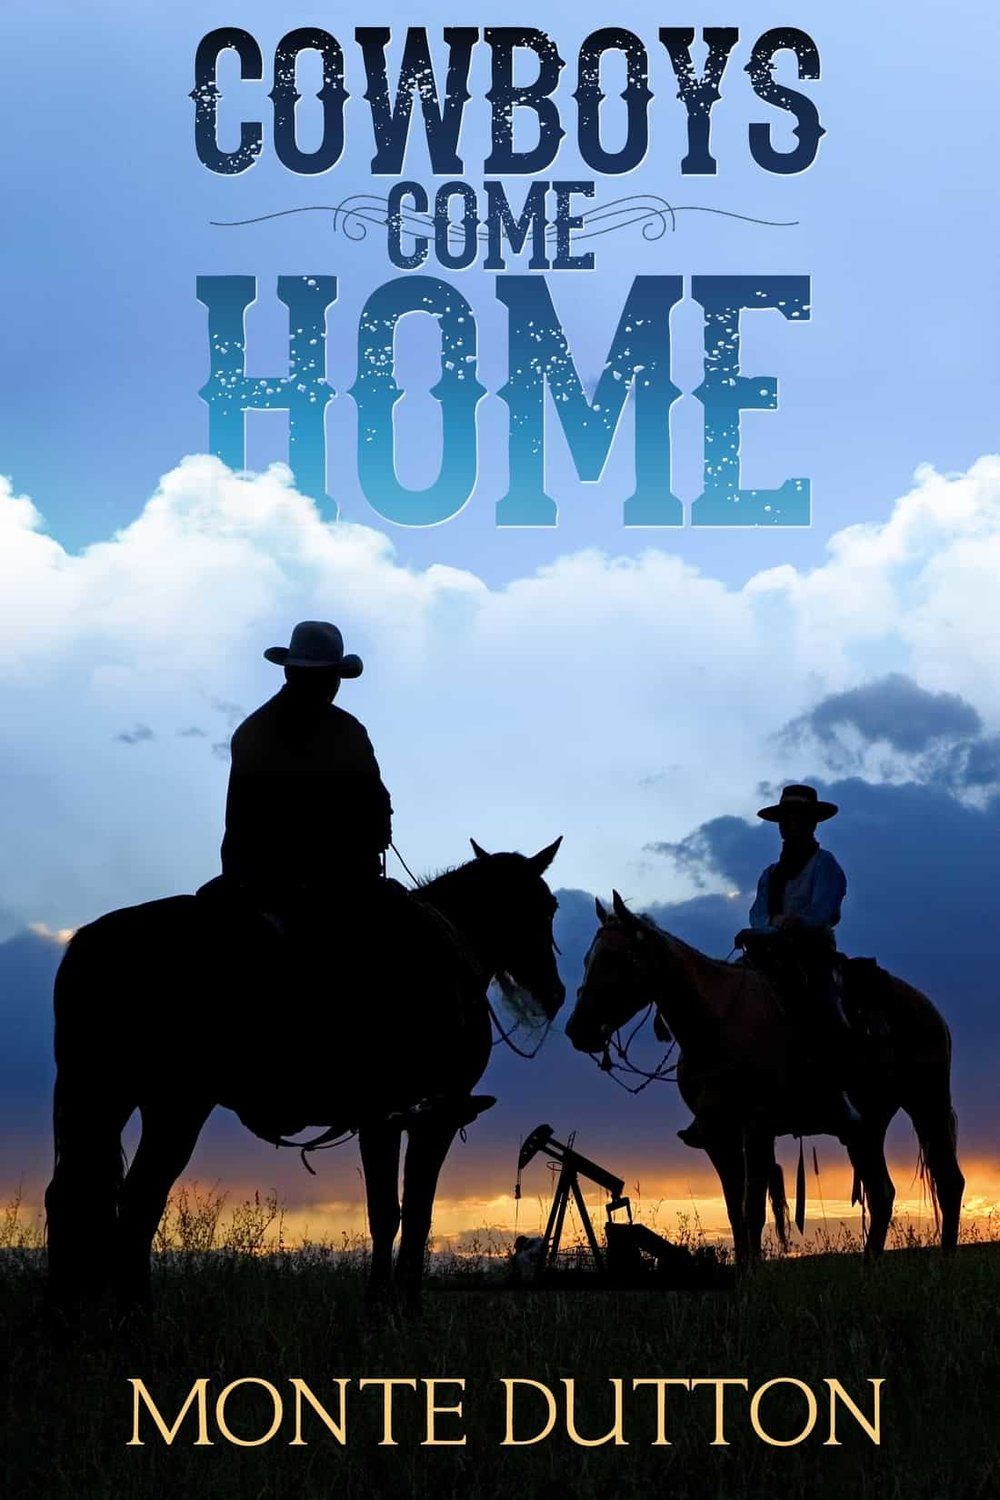 - Ennis Middlebrooks and Harry Byerly are warriors, and the time for fighting is past. They're cowboys, and when they get back home to Texas, the time for cowboys is passing, too.Monte Dutton's fifth novel, Cowboys Come Home, begins on the island of Peleliu, where the two privates somehow manage to save themselves when cut off from their fellow Marines by the Japanese. Ennis and Harry come home to a hero's welcome, but life gets complicated after that.The Middlebrooks ranch, east of Janus, near the Oklahoma border, is rundown, and Ennis's father is dying. Harry moves in, Mama Middlebrooks moves out, and Ennis takes a job as a deputy sheriff under a wise but aging lawman, Judson Lawson. His little sister, Becky, is wild beyond her years and takes an immediate shine to Harry, who is haunted by the war and prone to violence.The closing of an Army base, Camp Ammons, is causing the town to die. The county loses nearly forty thousand infantry trainees and gains nearly sixty thousand acres. The ranchers it displaced are either long gone or too poor to purchase their land back. Men with political clout and money move in like vultures. Money buys influence and, with it, elections. EnnisMiddlebrooks goes from sheriff in waiting to disgraced lawman.He and his old Marine pal, Harry Byerly, decide to do something about it.